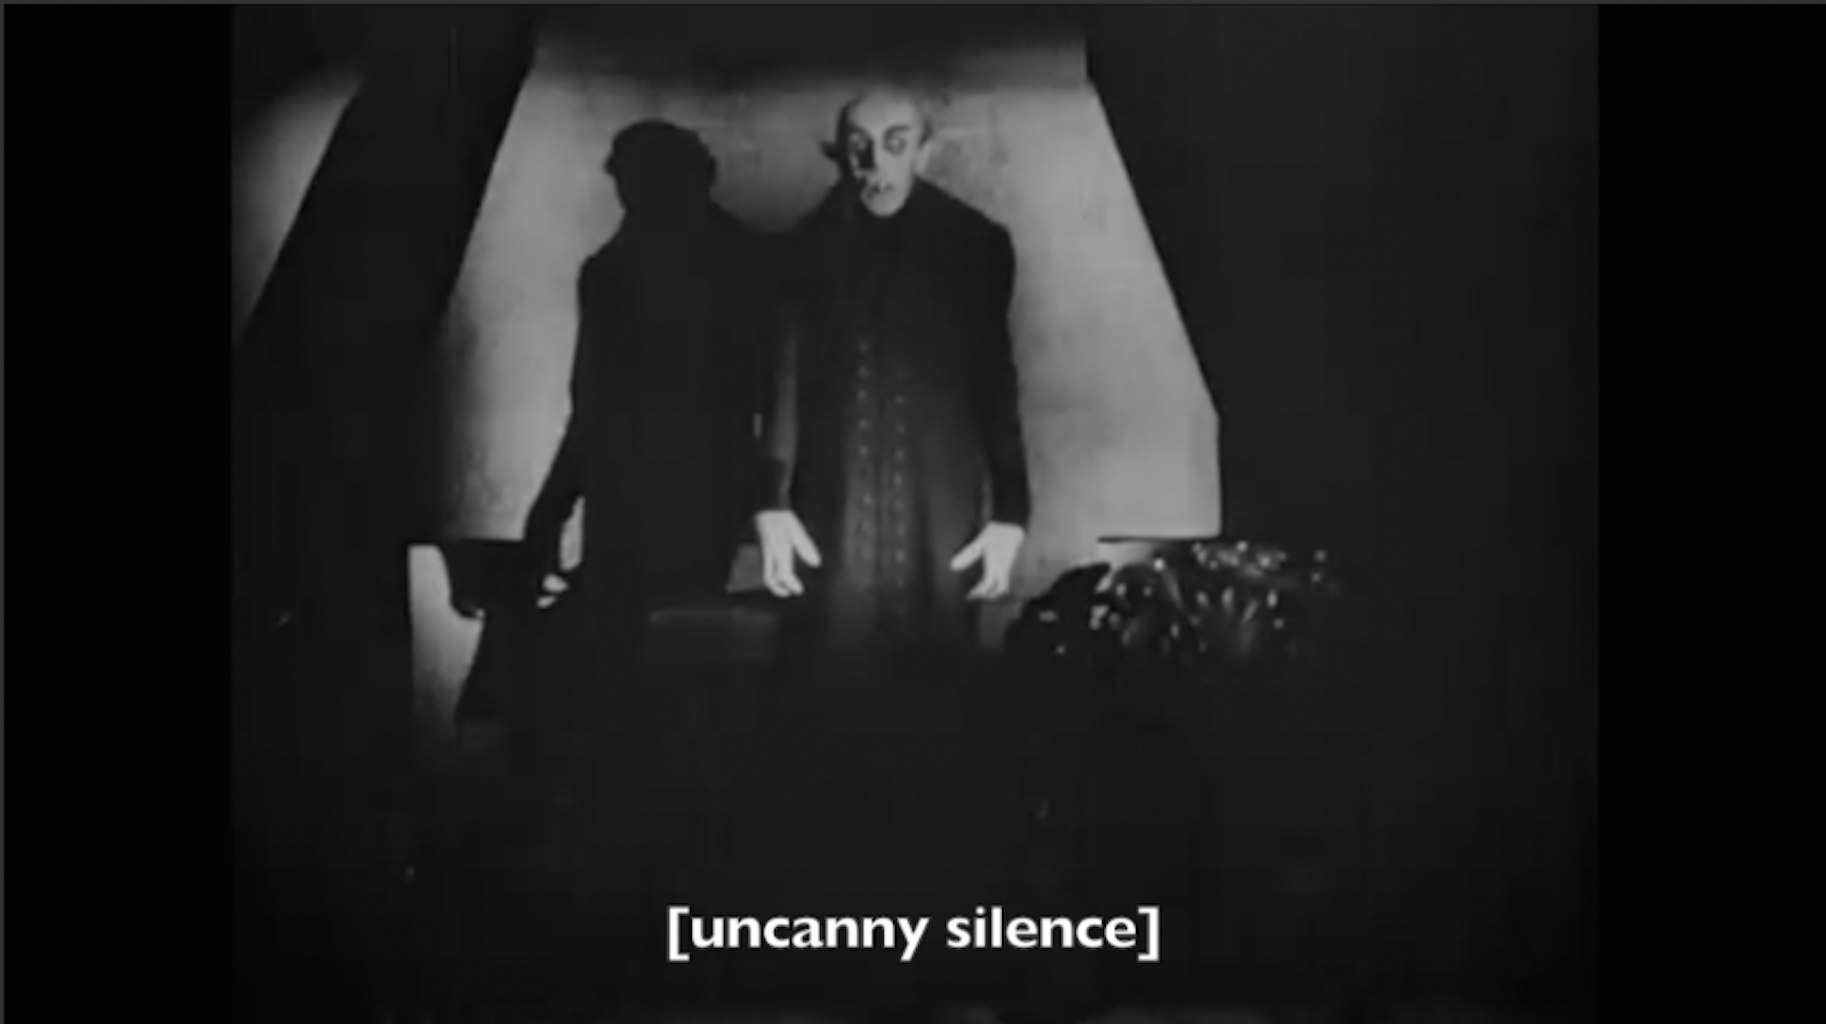 """Image of Nosferatu with a caption that reads """"uncanny silence"""" in brackets."""